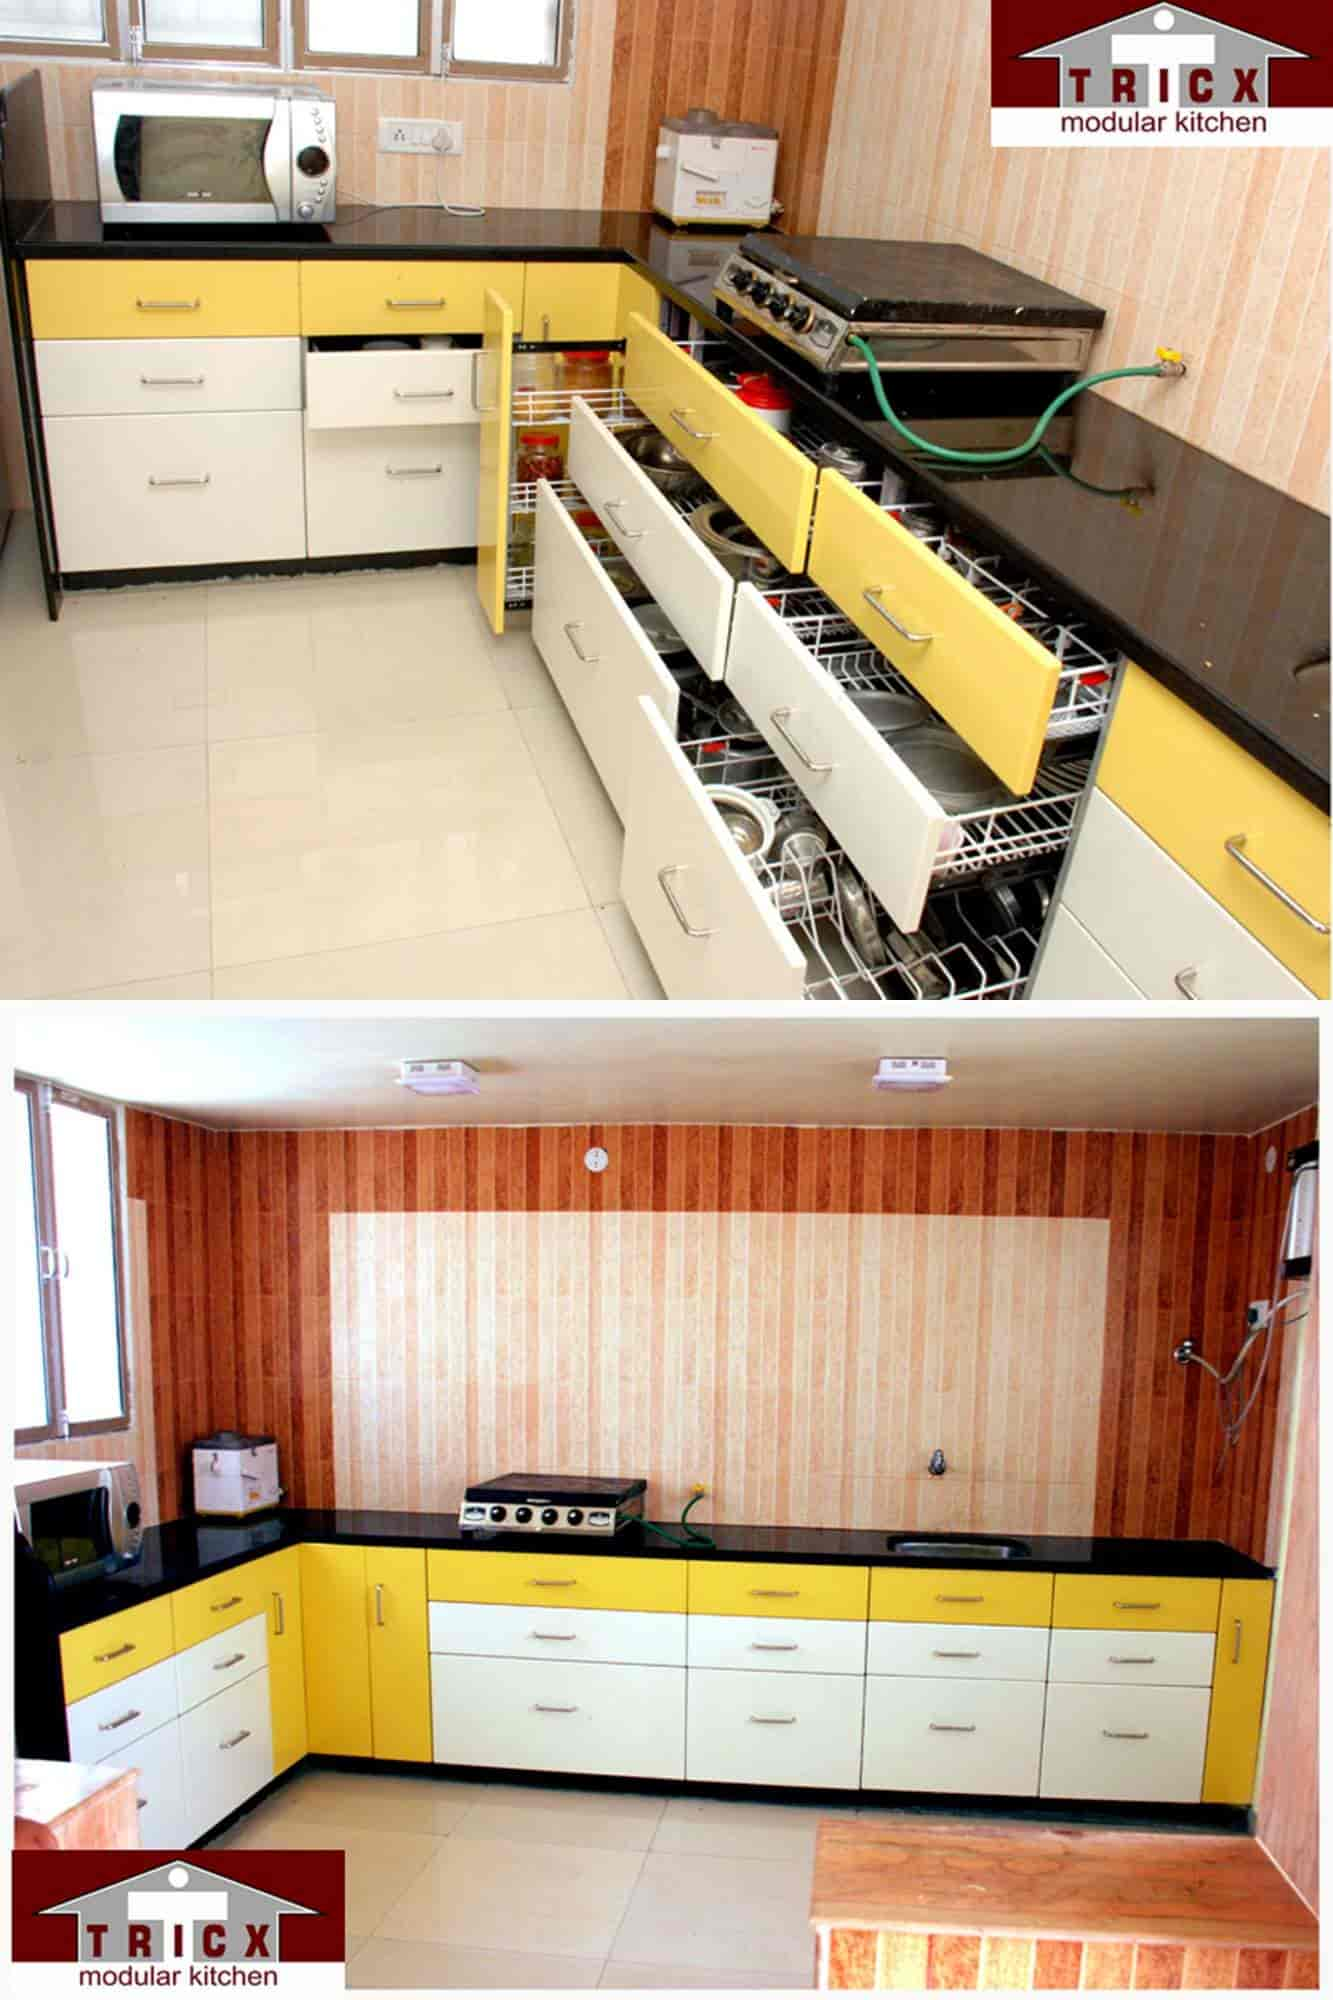 Modular kitchen tricx modular kitchen photos cancer hospital rajkot modular kitchen manufacturers